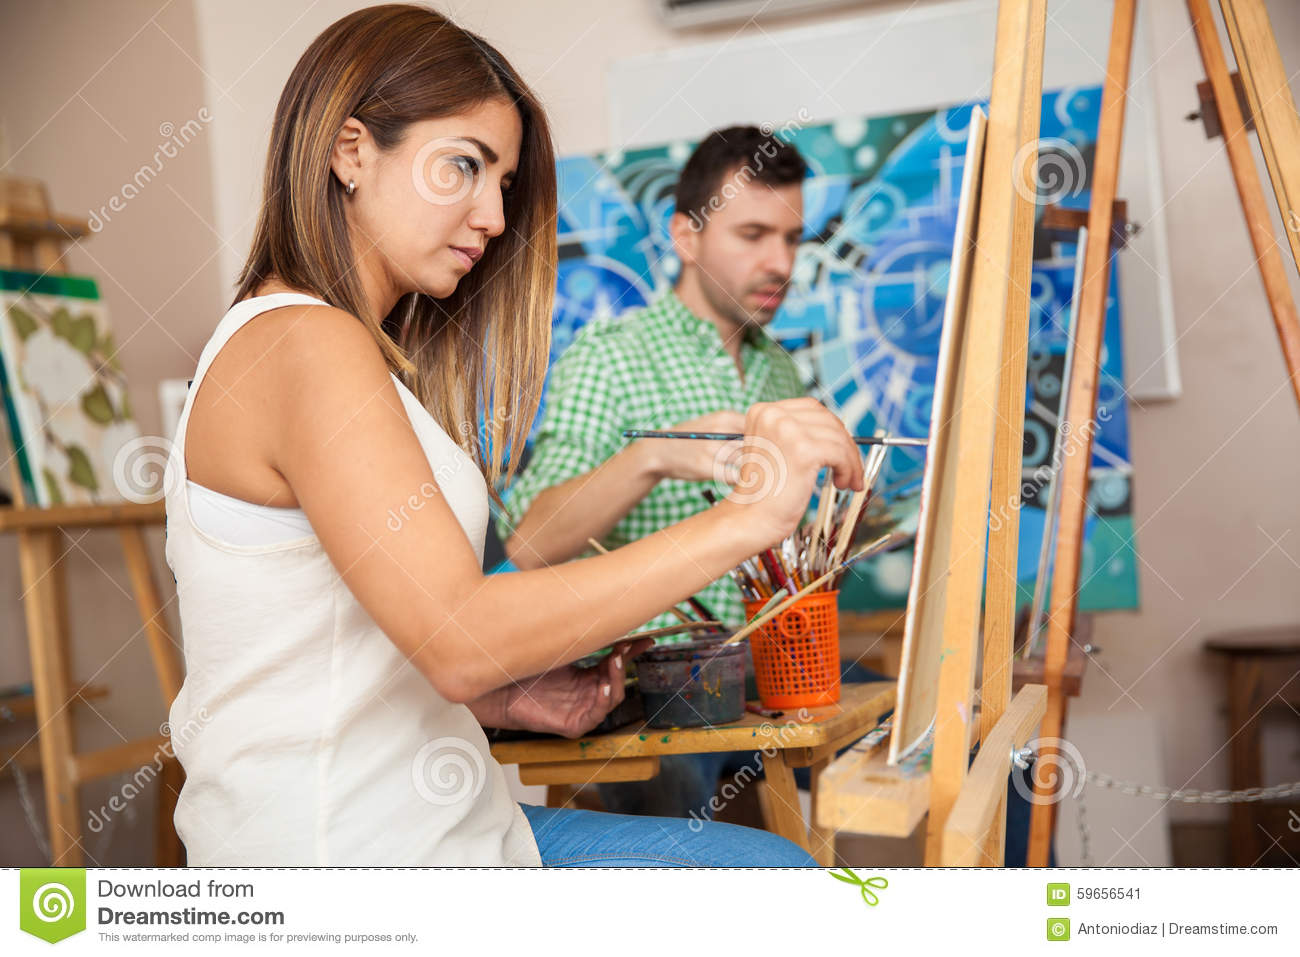 Adults attending art class stock image. Image of artistic ...